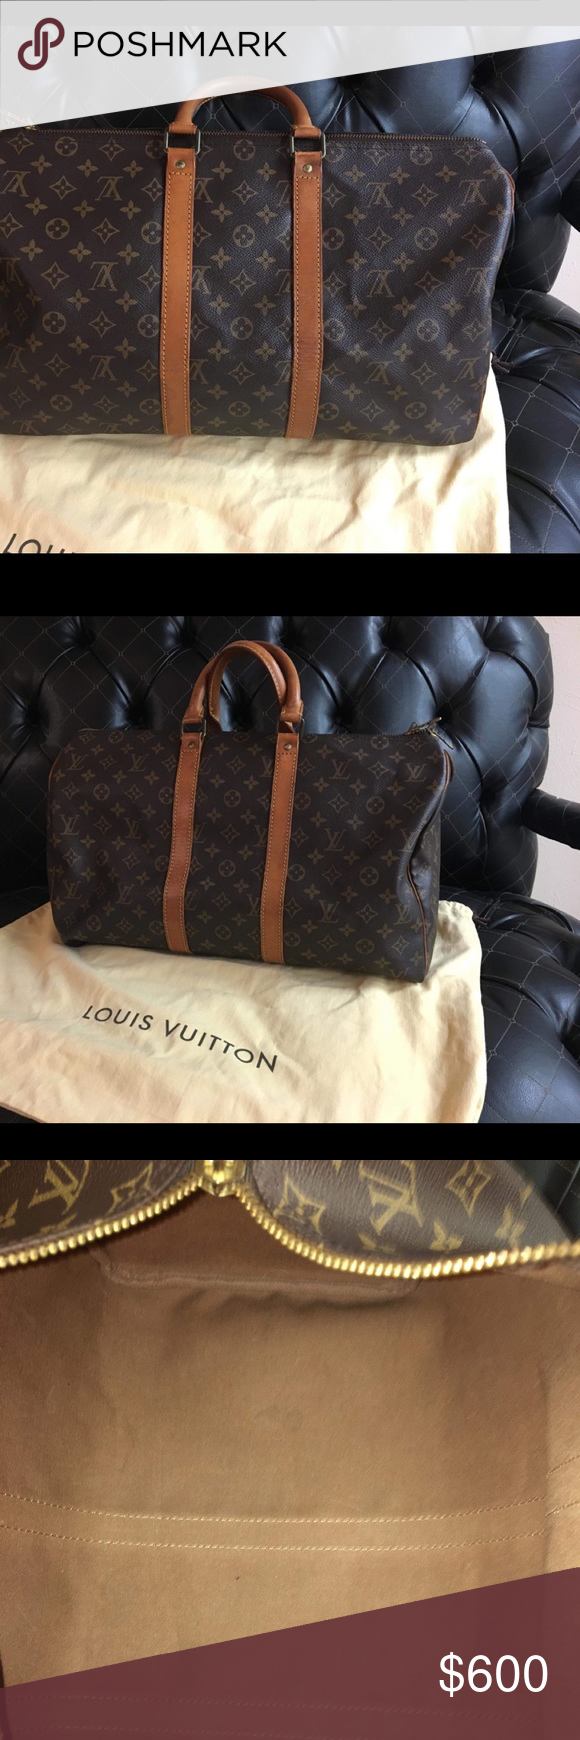 Authentic Keep all 45 carry on Louis vuitton travel bags